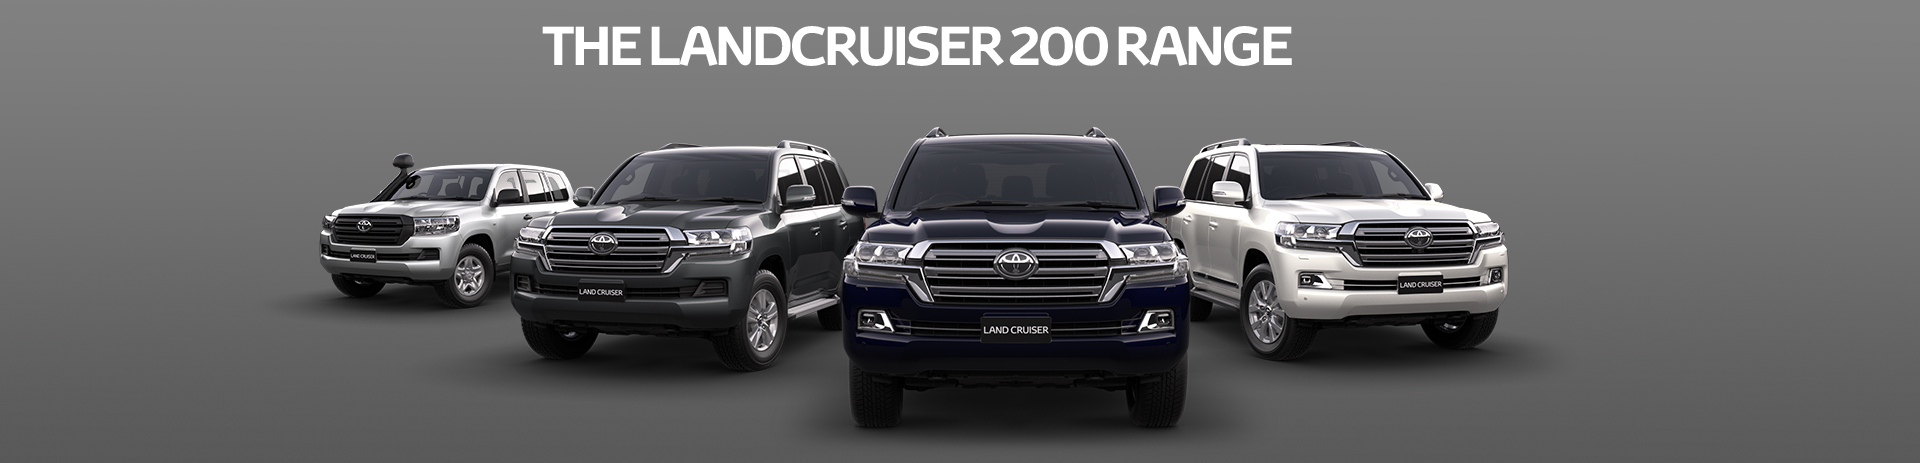 Check out the Landcruiser 200 Range